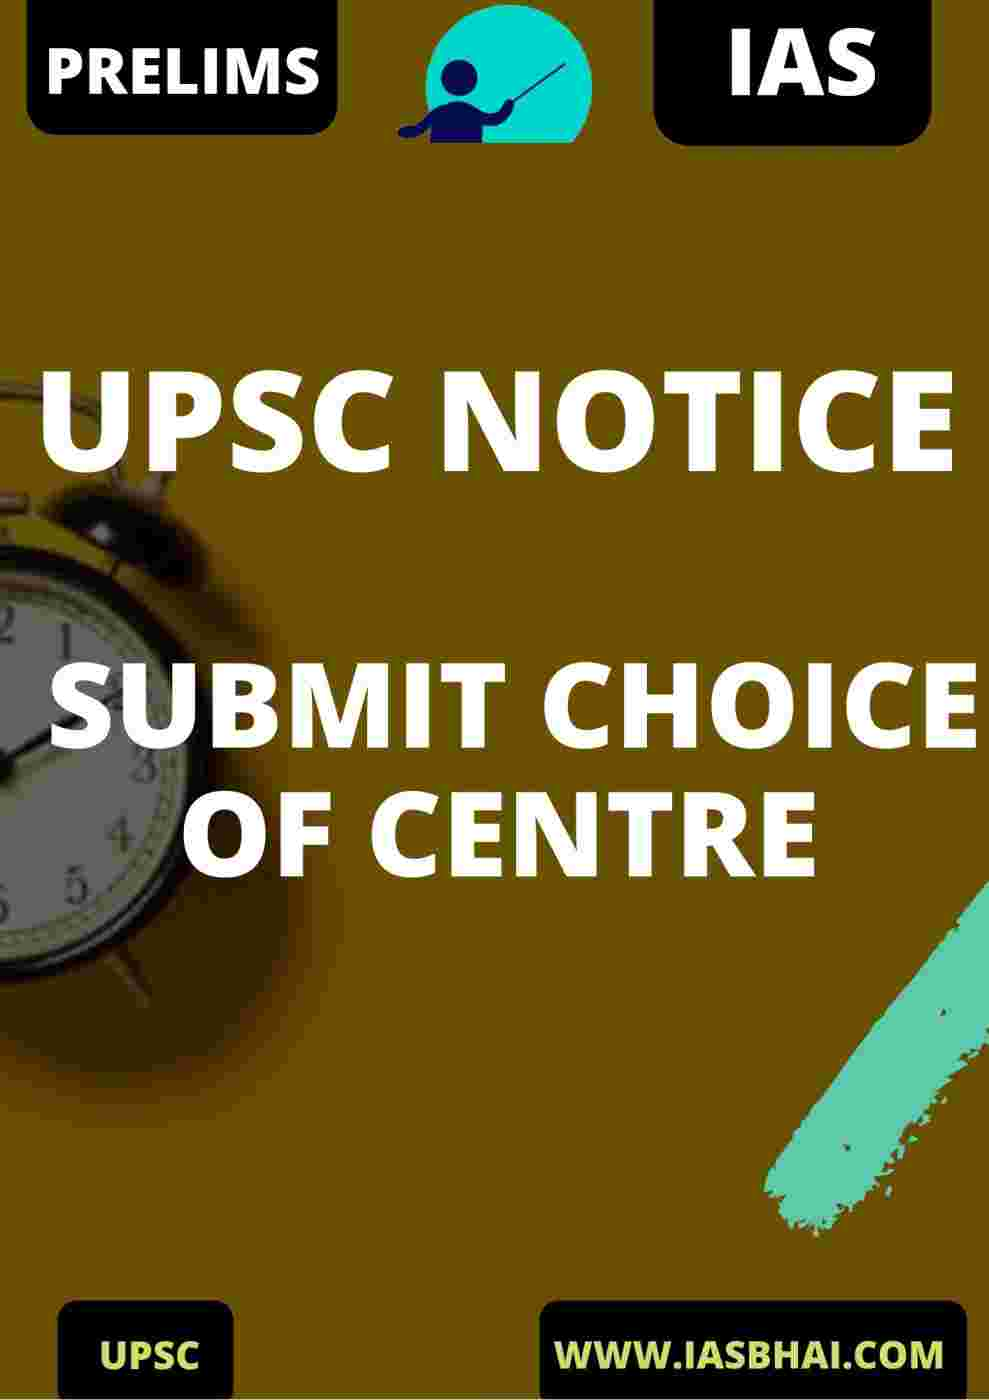 SUBMIT CHOICE OF CENTRE _ UPSC NOTICE